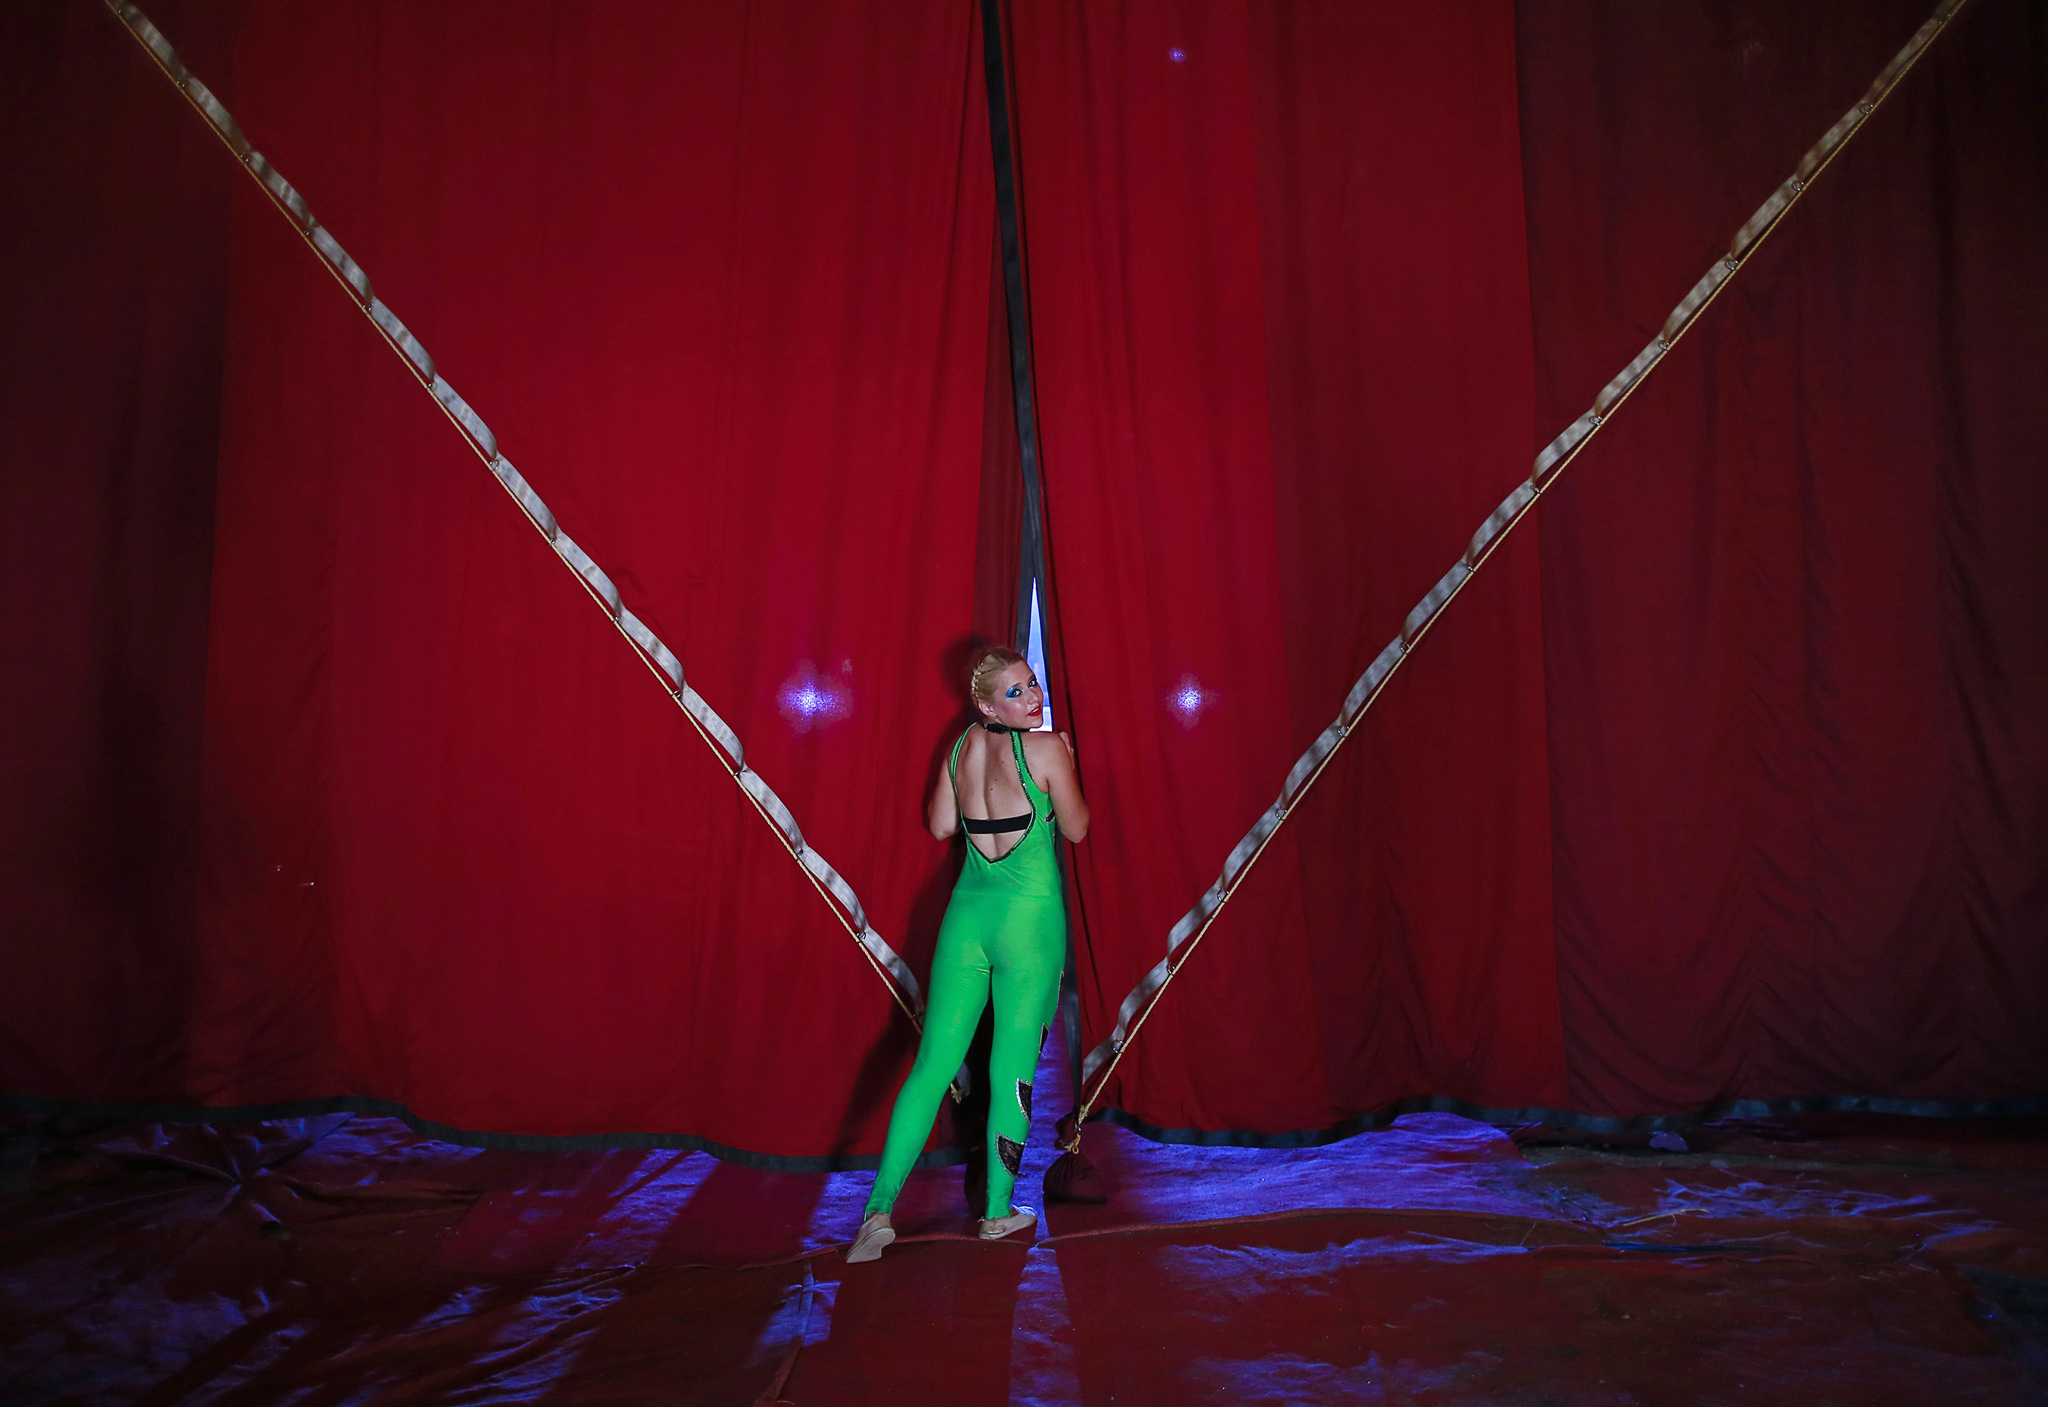 A female member of an acrobatic team looks from behind the curtains as she waits backstage before the start of her performance at the Rambo Circus in Mumbai...A female member of an acrobatic team looks from behind the curtains as she waits backstage before the start of her performance at the Rambo Circus in Mumbai November 6, 2014. The Rambo circus travels all over the country throughout the year. It has a seating capacity of 2,000 people and tickets are priced from 350 rupees ($5.60). According to Rambo Circus owner Sujit Dilip, the ban on the use of wild animals, the lack of new artists and various restrictions by the government have resulted in the drastic decline of the circus industry in India. REUTERS/Danish Siddiqui